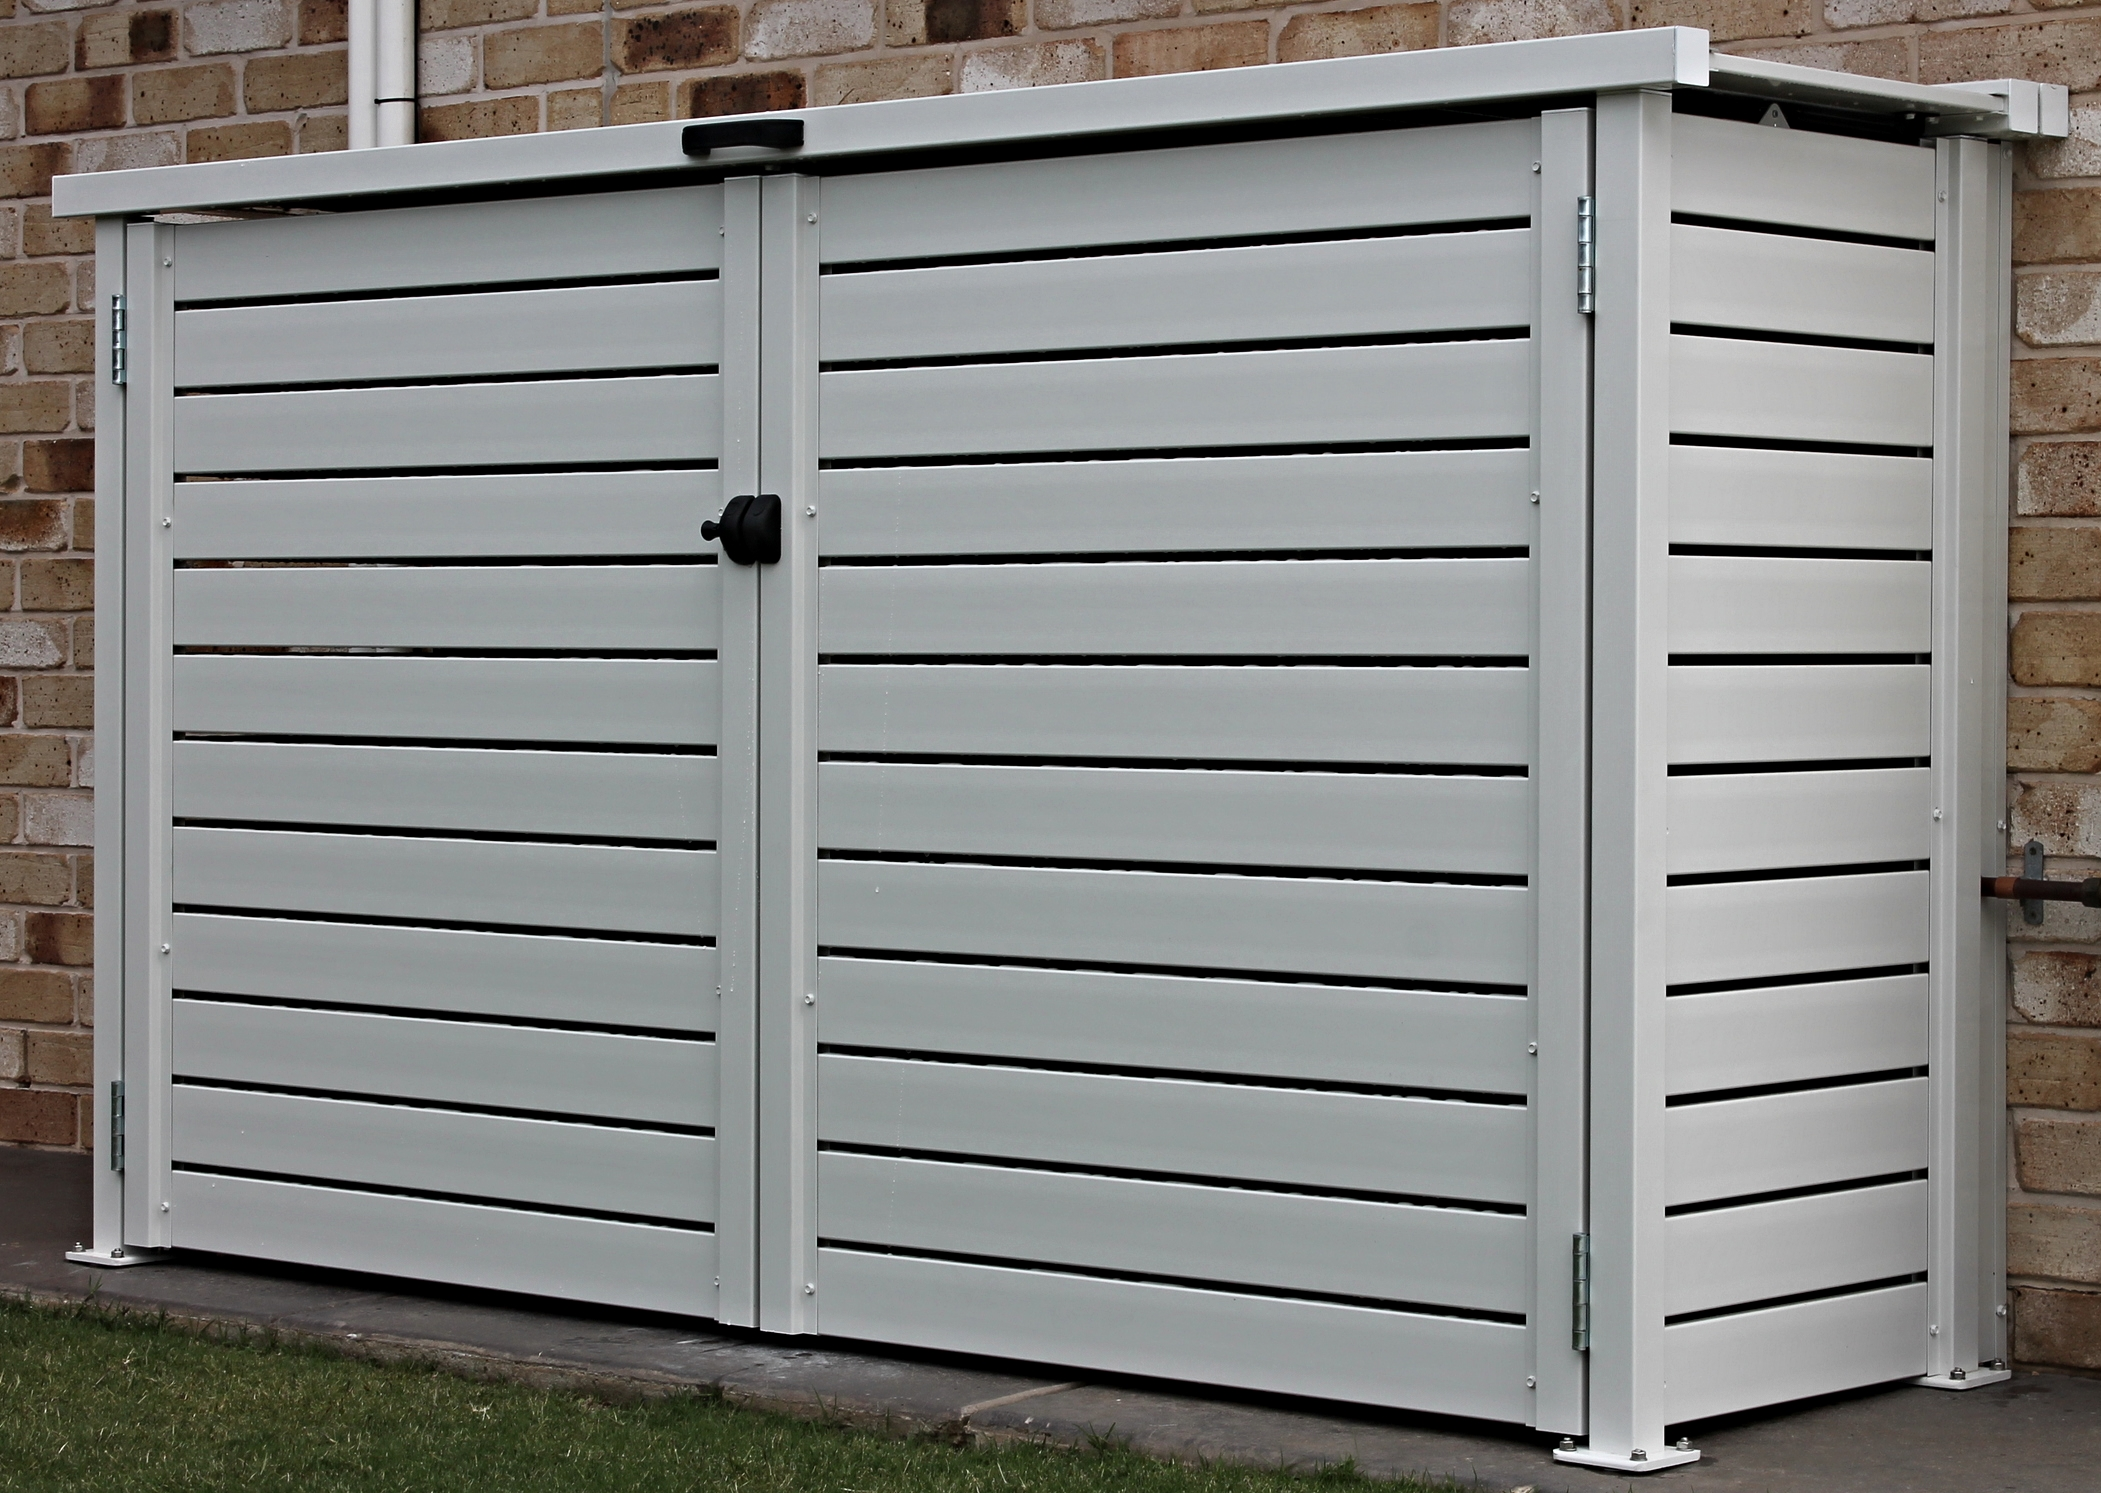 Privacy screen built to conceal and protect pool pumping equipment